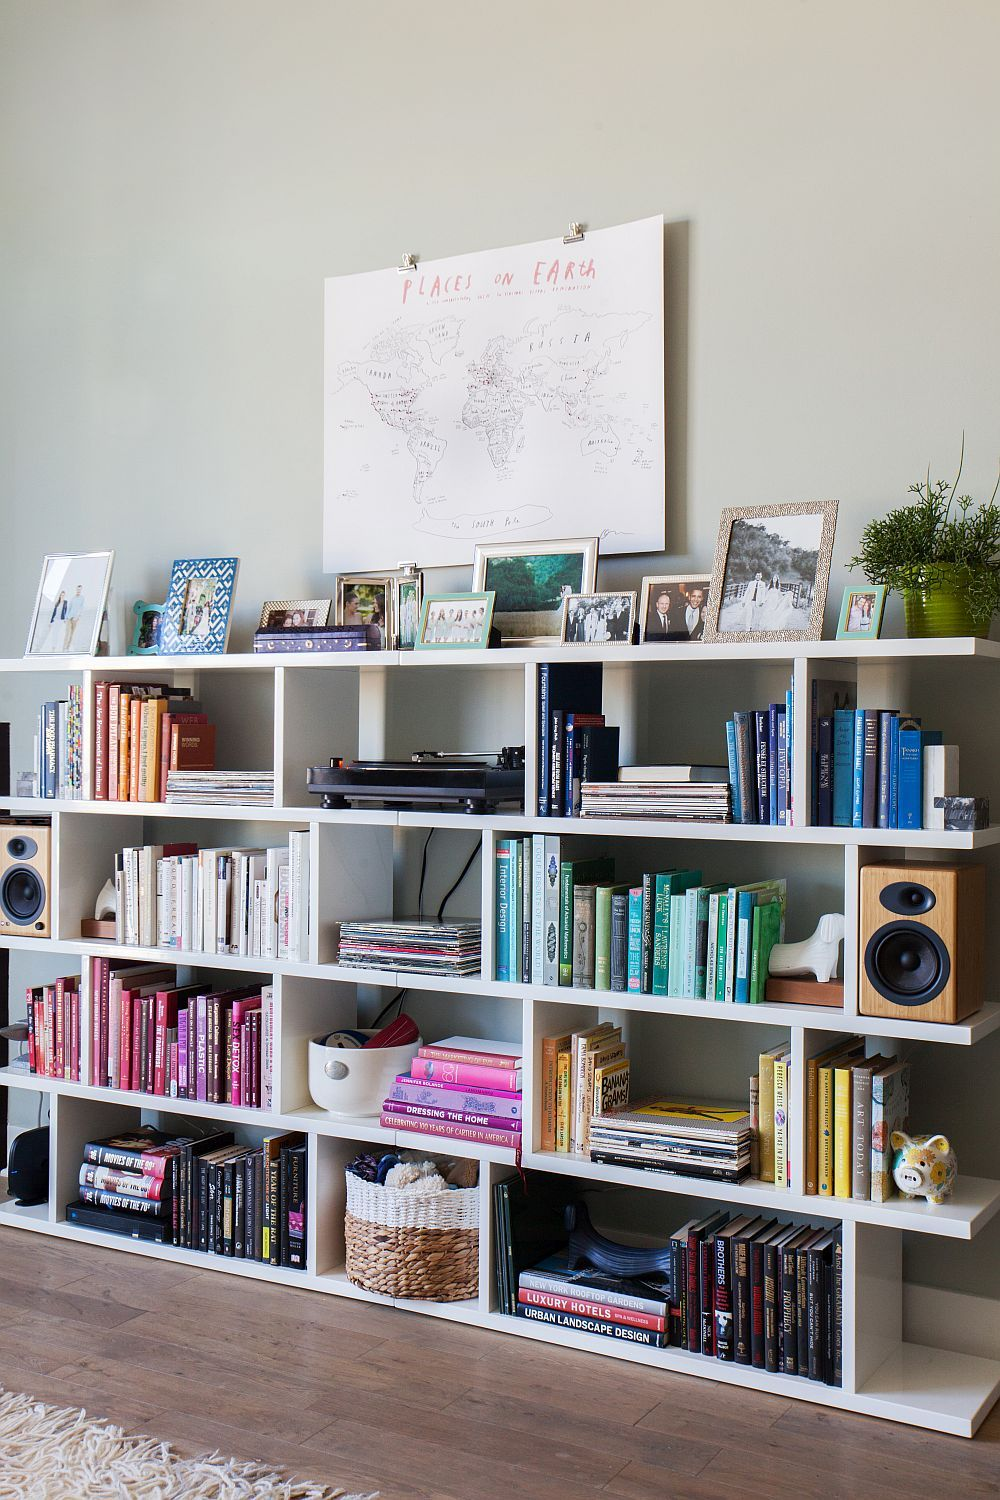 Pin On Bookcases & Shelves